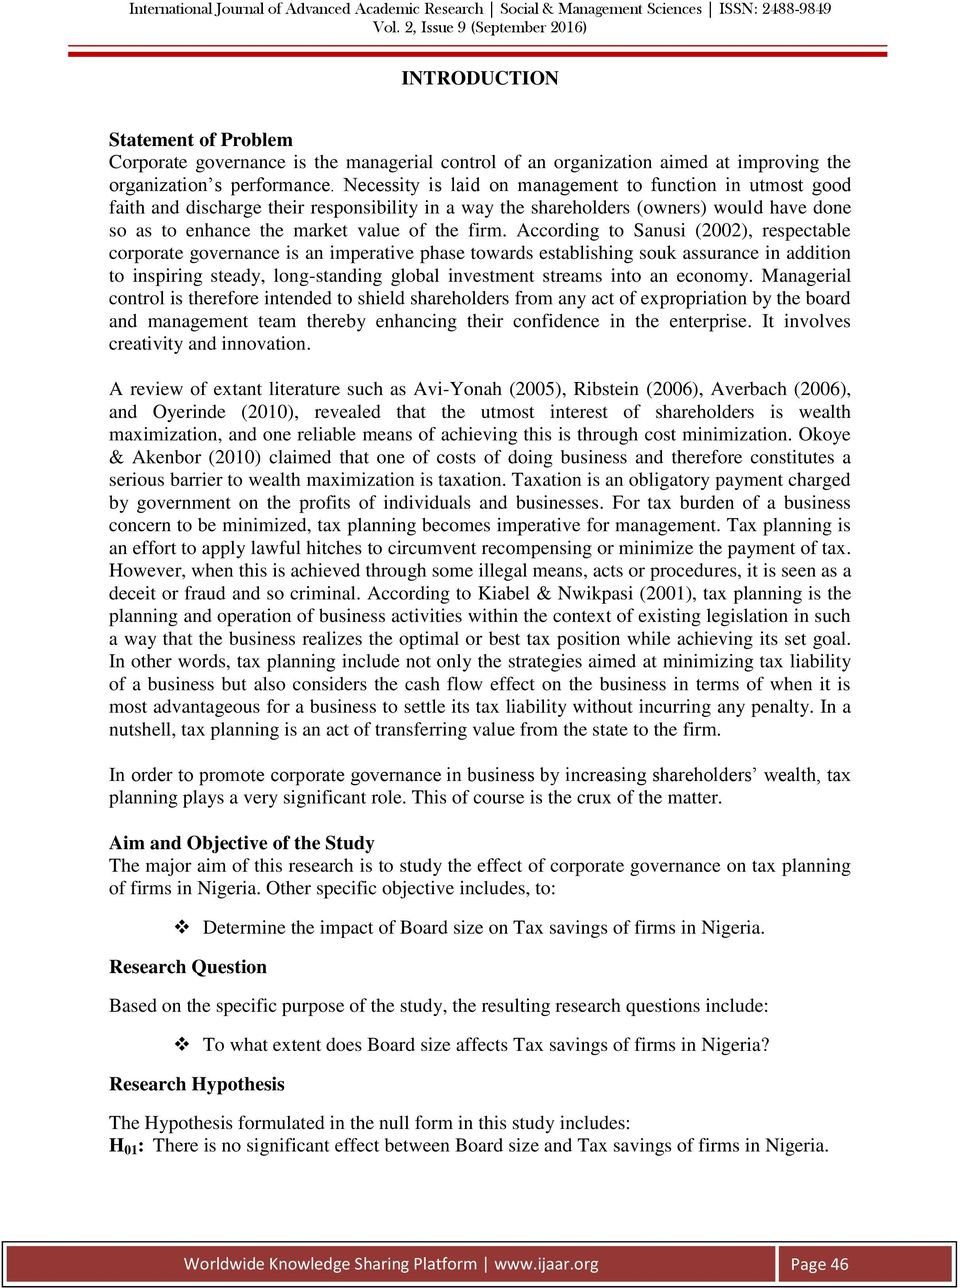 CORPORATE GOVERNANCE MECHANISM AND TAX PLANNING IN NIGERIA - PDF